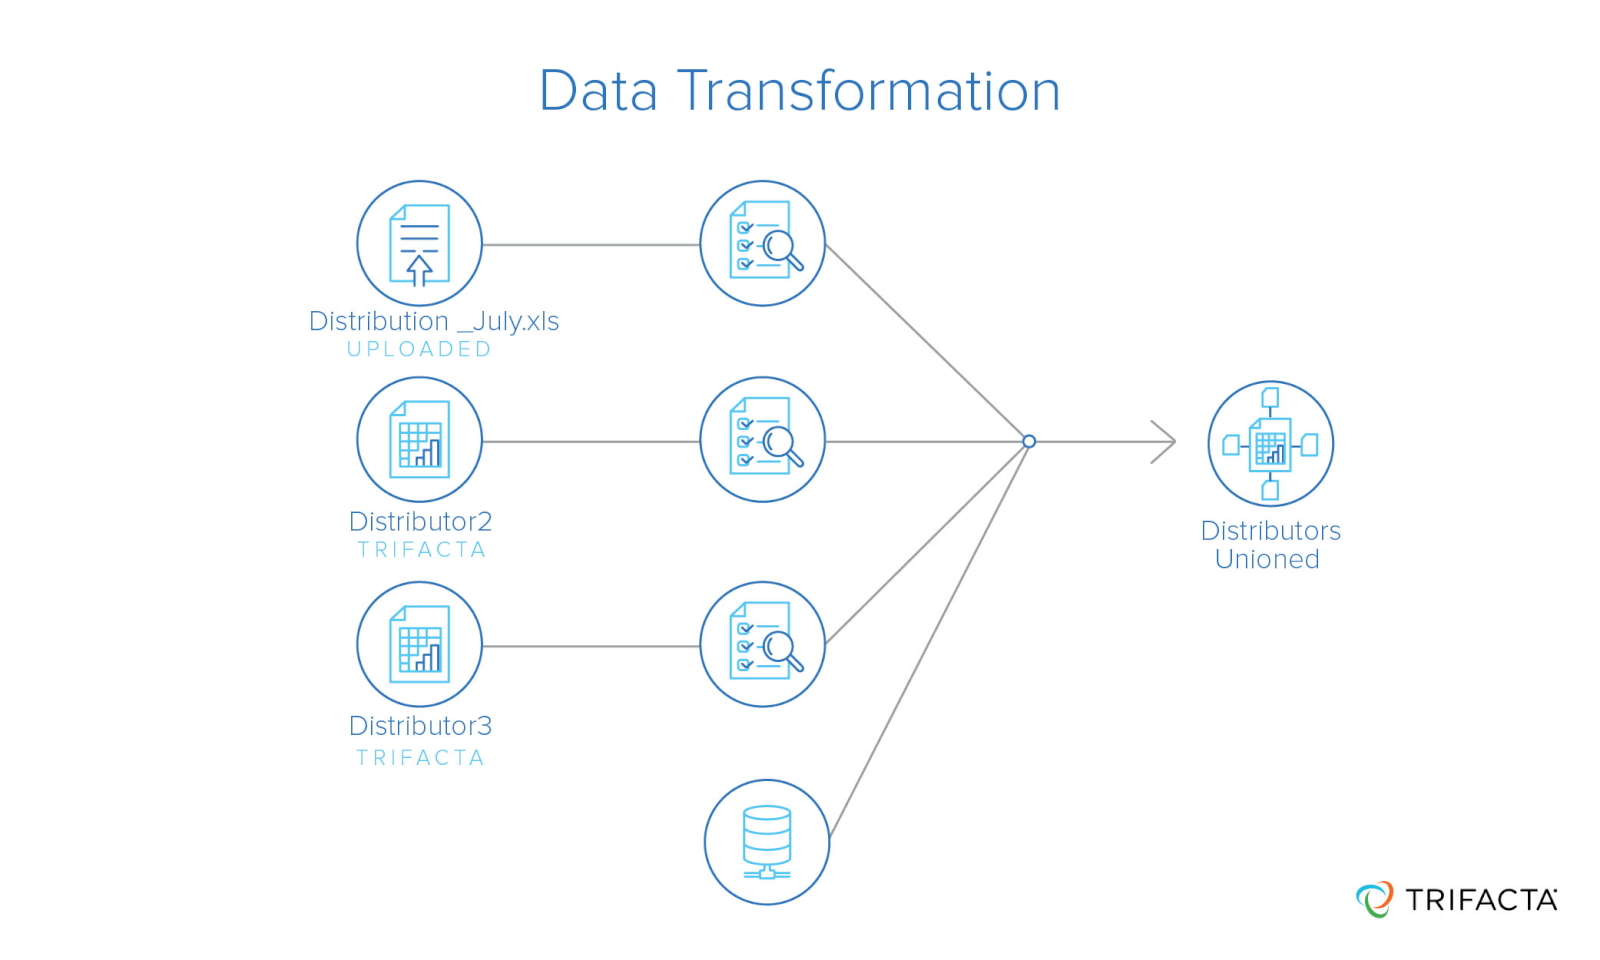 Data transformation converts data from a source format to a consistent format for analysis